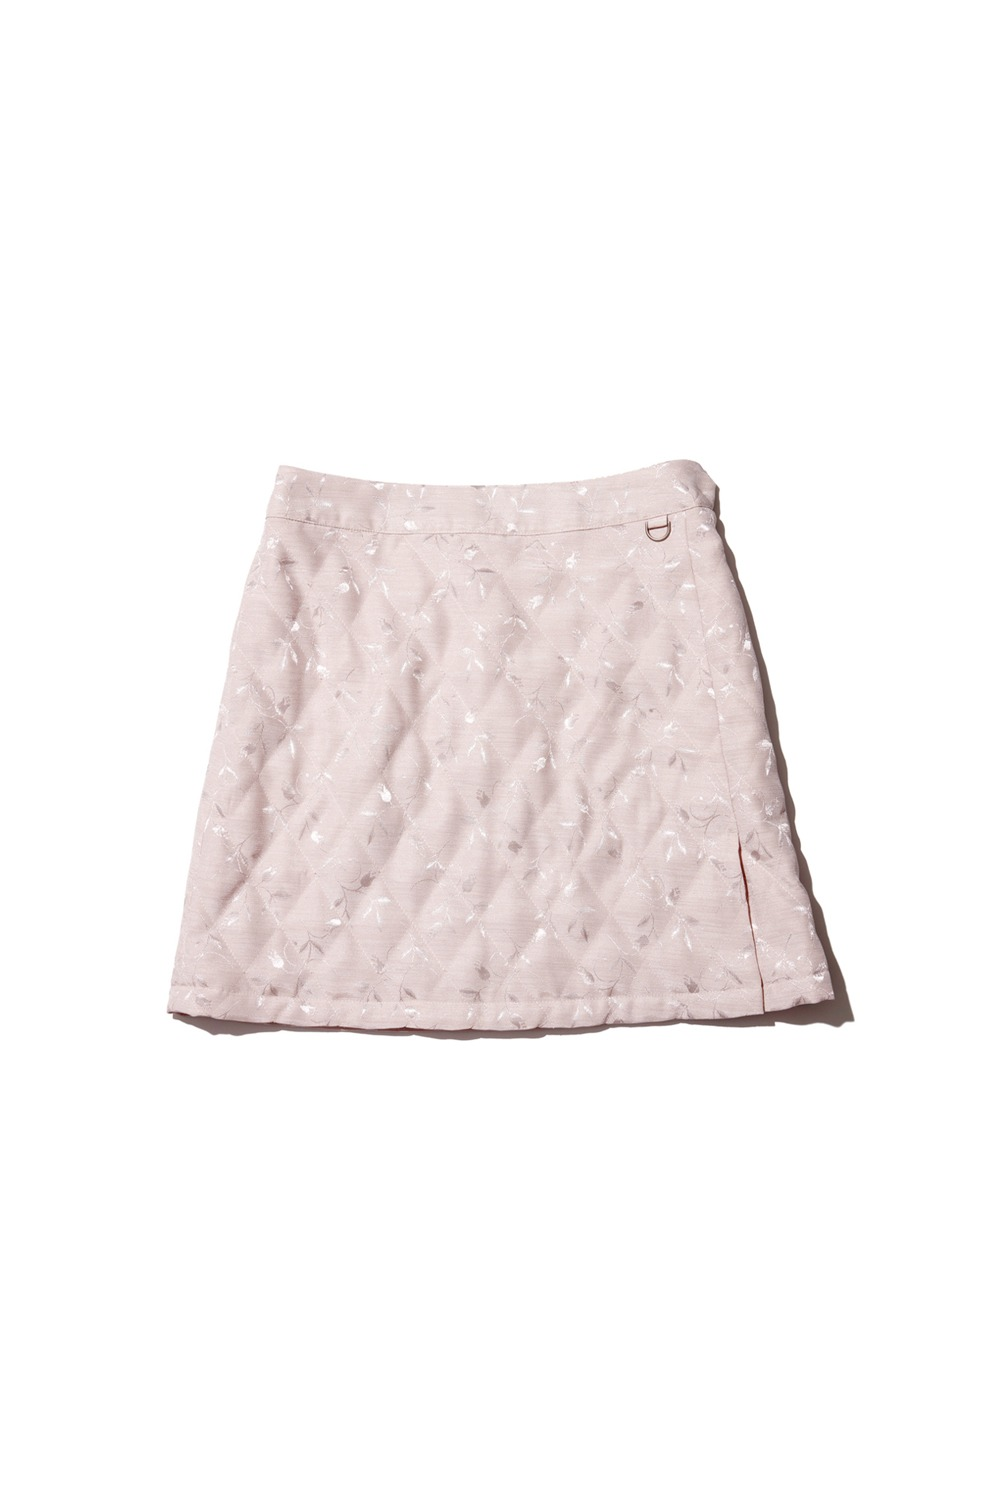 PROJECT MAGO_QUILTED SKIRT_CREAM